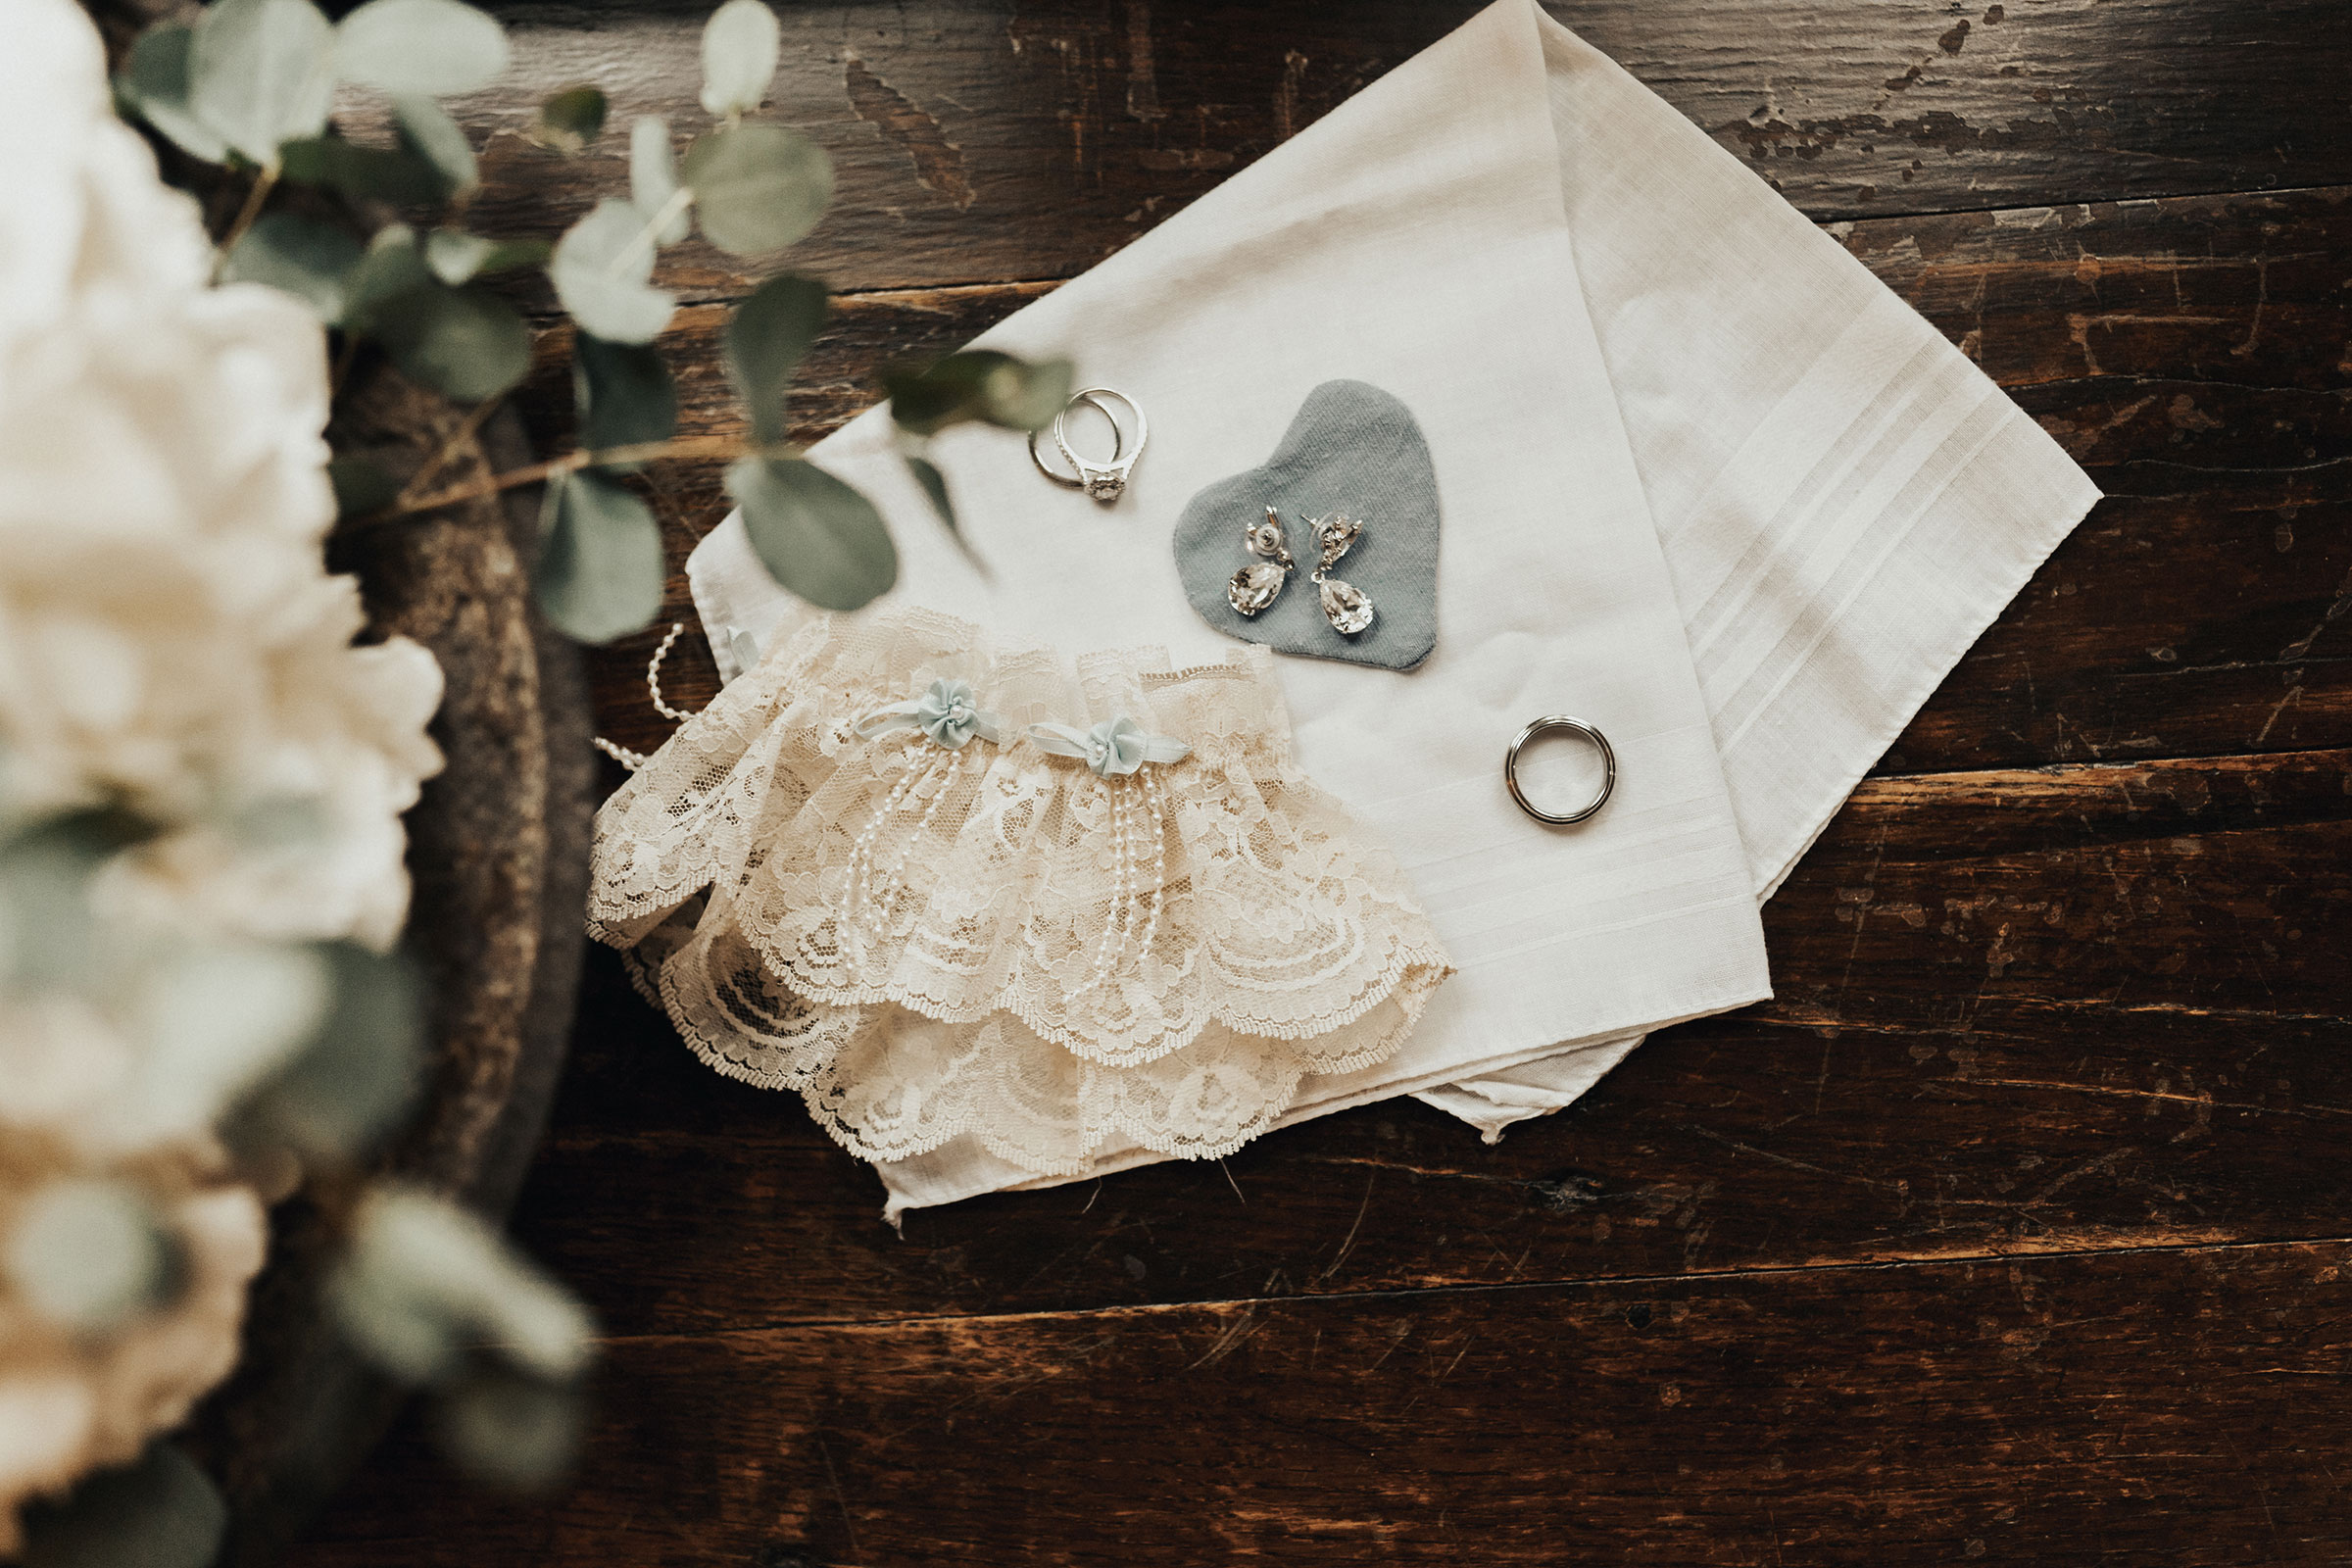 detail-shot-of-rings-bouquet-garter-and-earrings-elopement-salisbury-house-desmoines-iowa-raelyn-ramey-photography.jpg